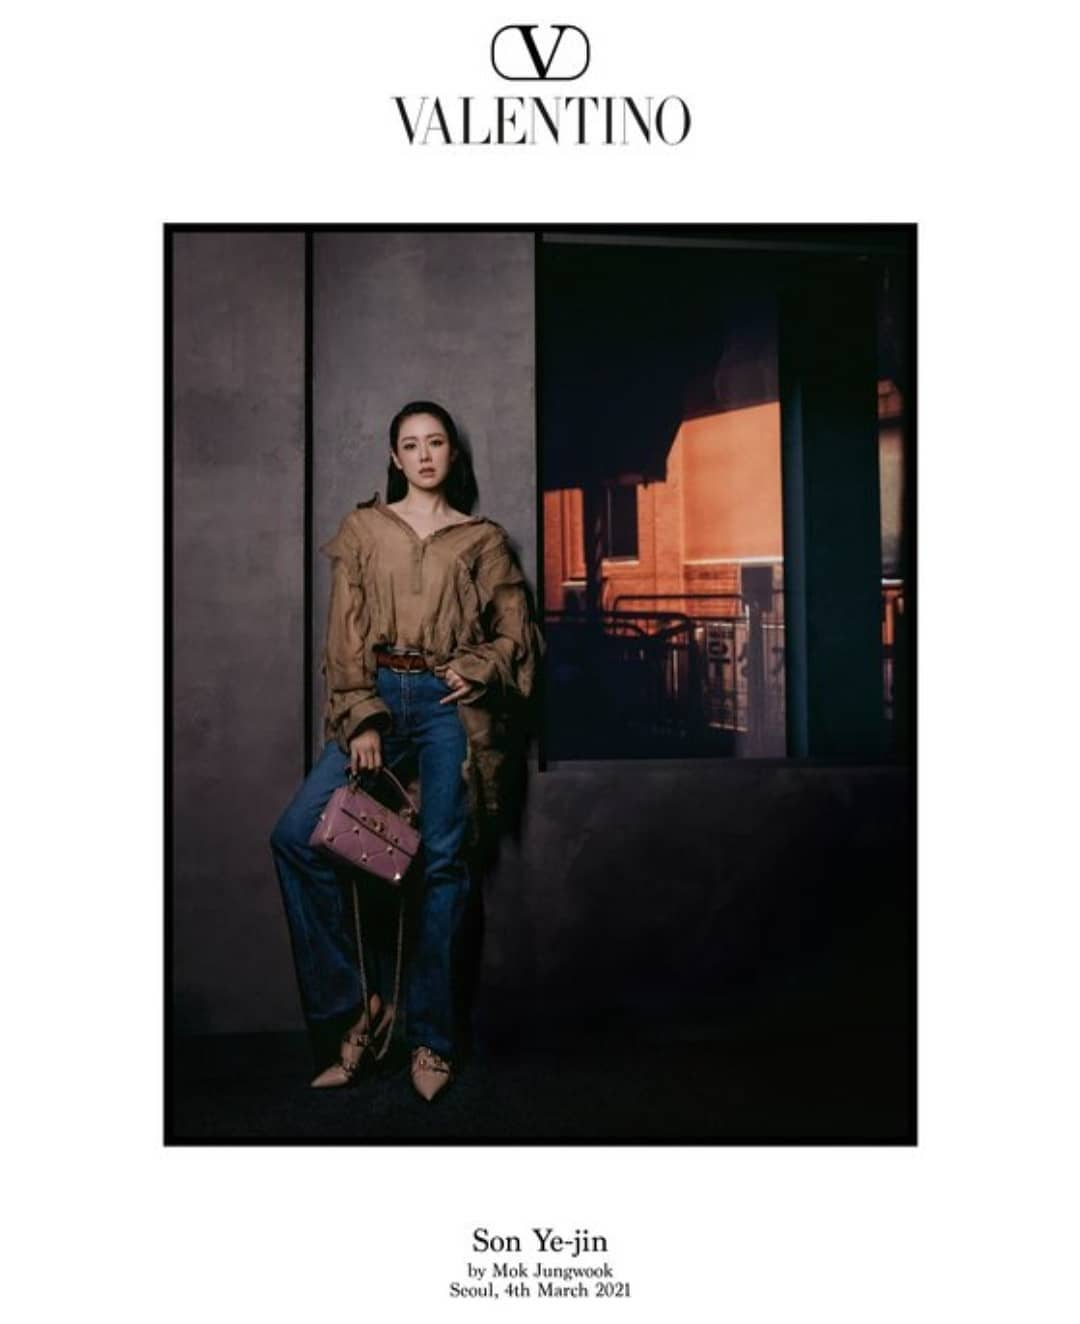 Son Ye Jin is the latest Valentino DiVa